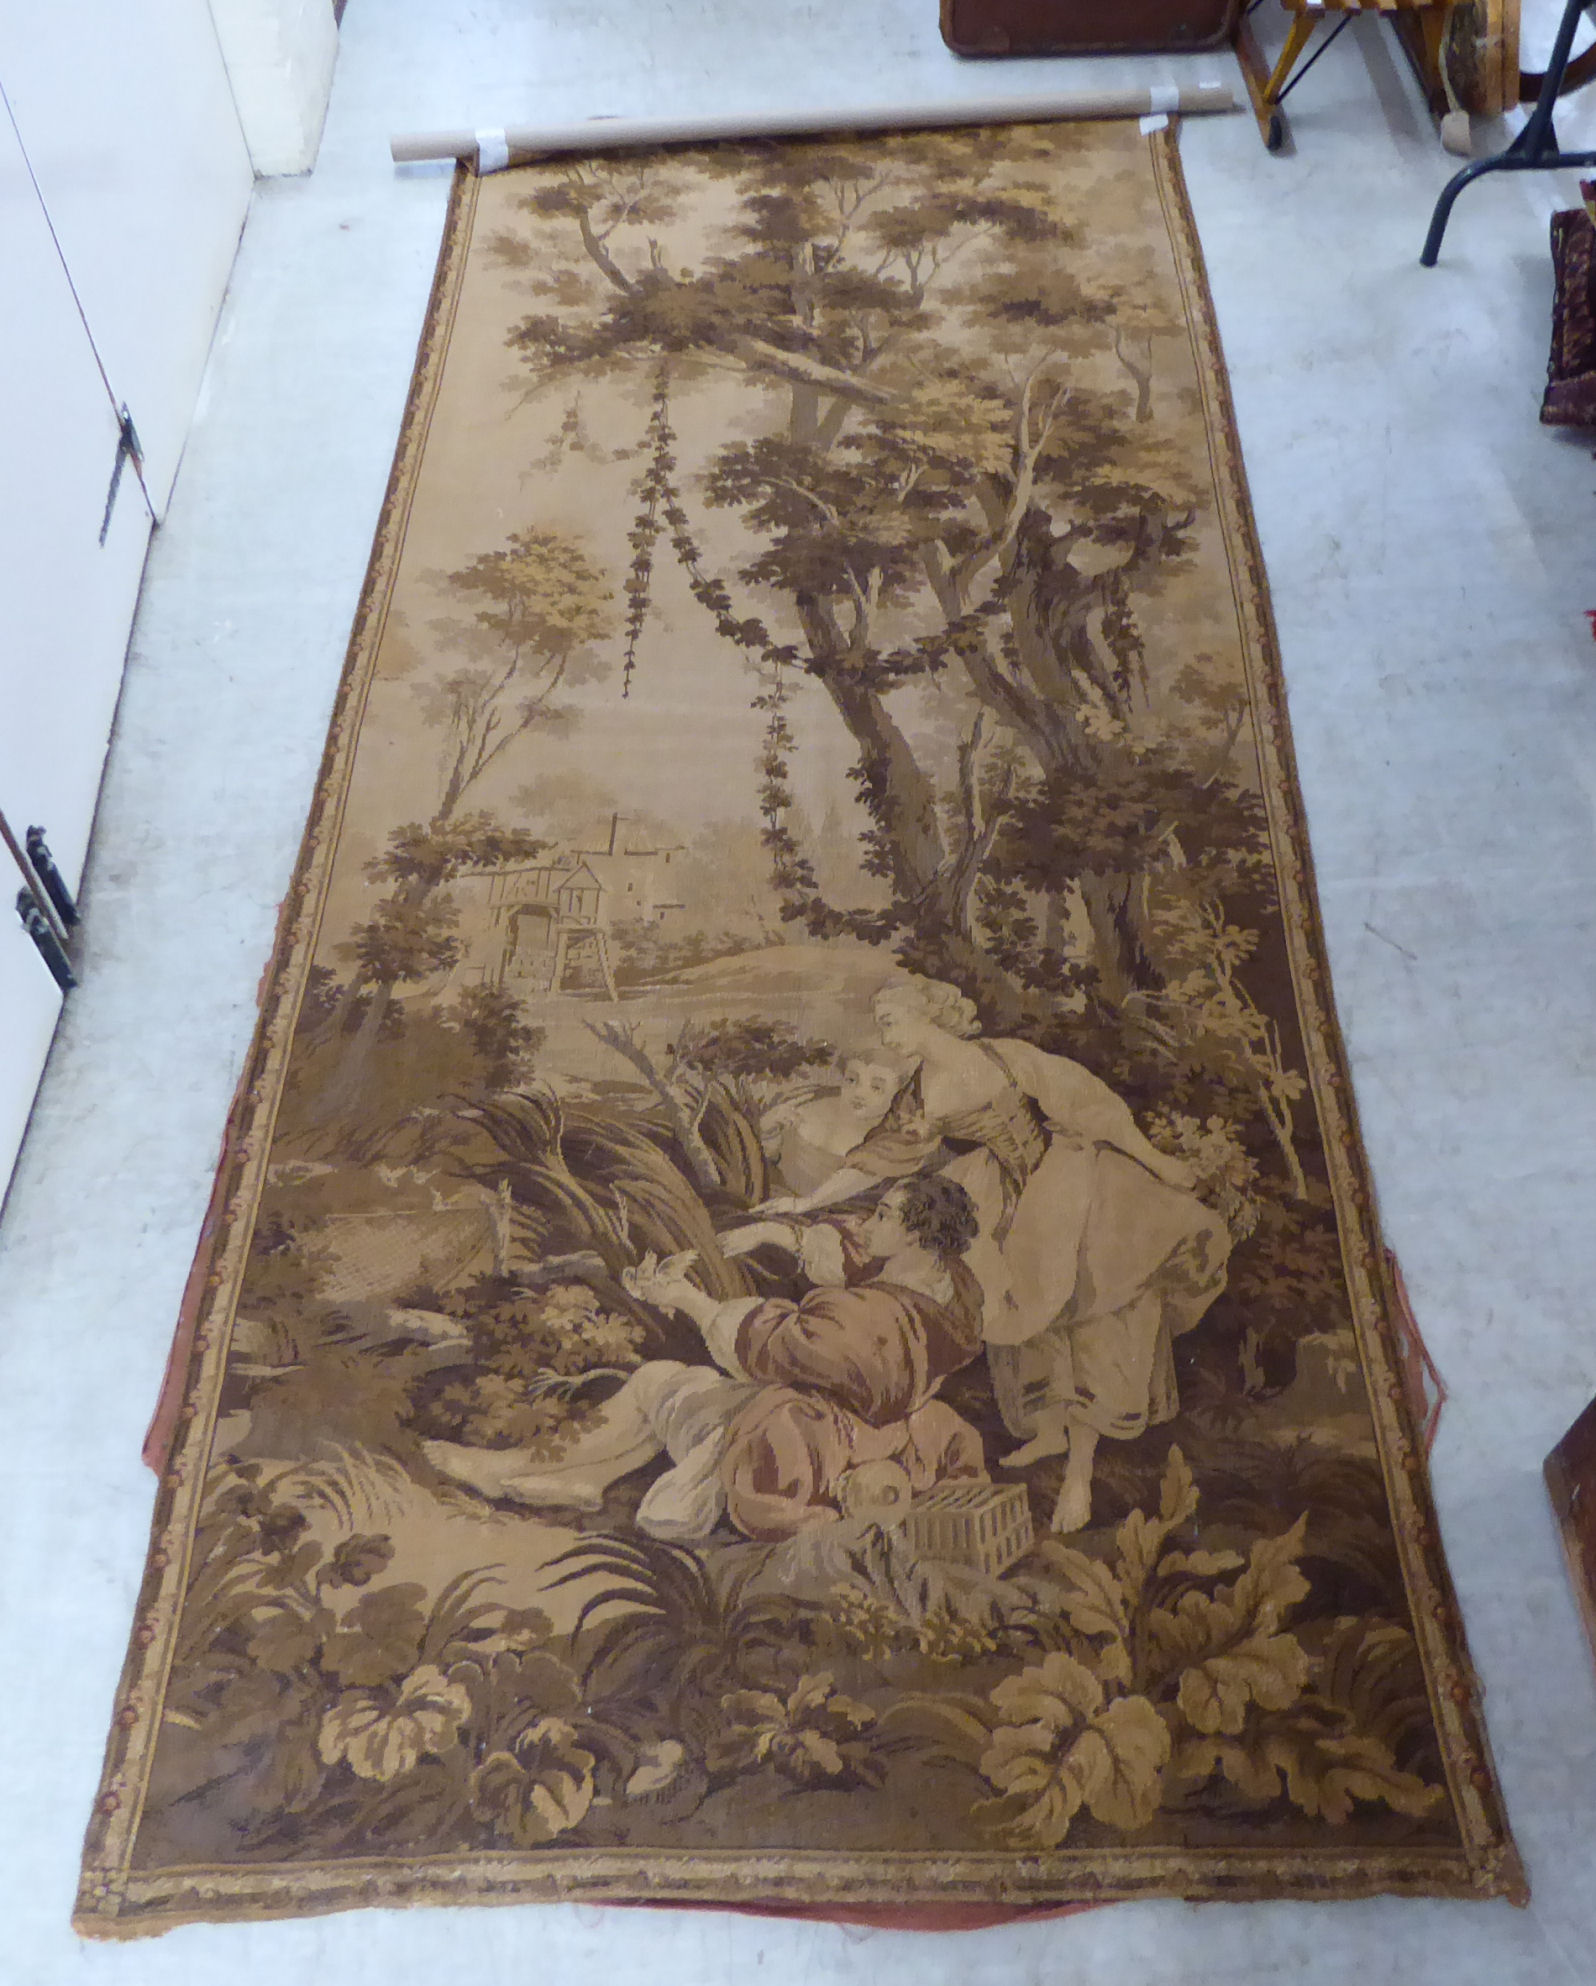 Lot 23 - A 20thC Flemish inspired tapestry wall hanging with figures in a garden 46'' x 112'' BSR